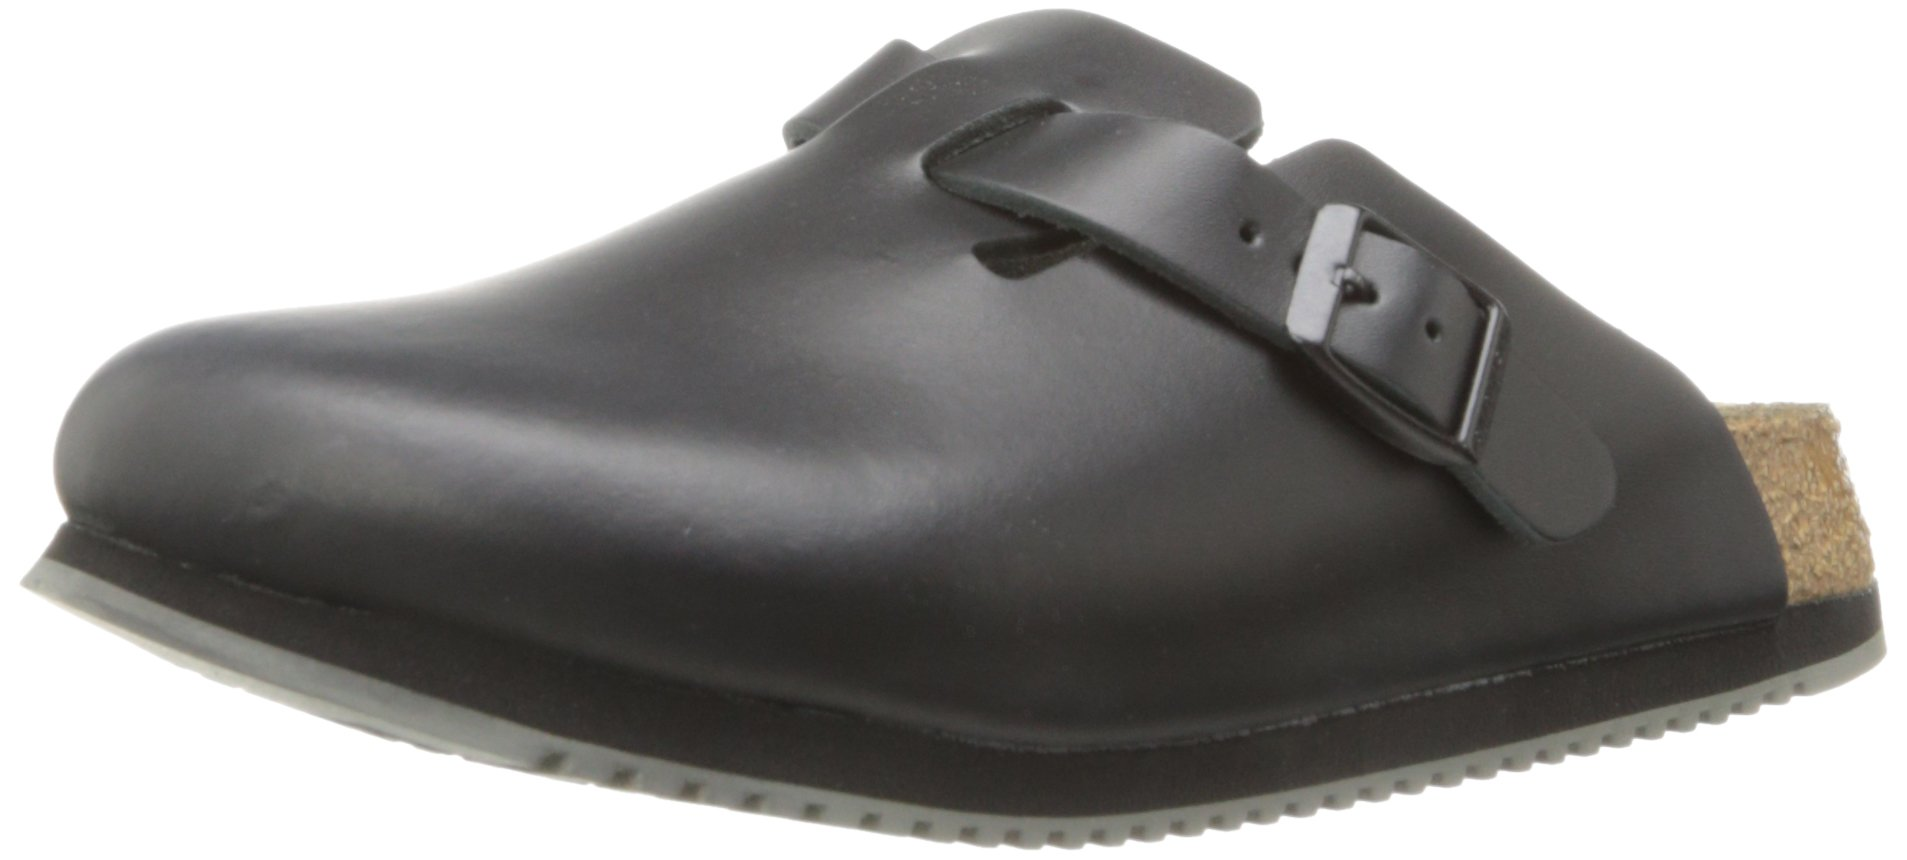 Birkenstock Unisex Professional Boston Super Grip Leather Slip Resistant Work Shoe,Black,46 M EU by Birkenstock Professional